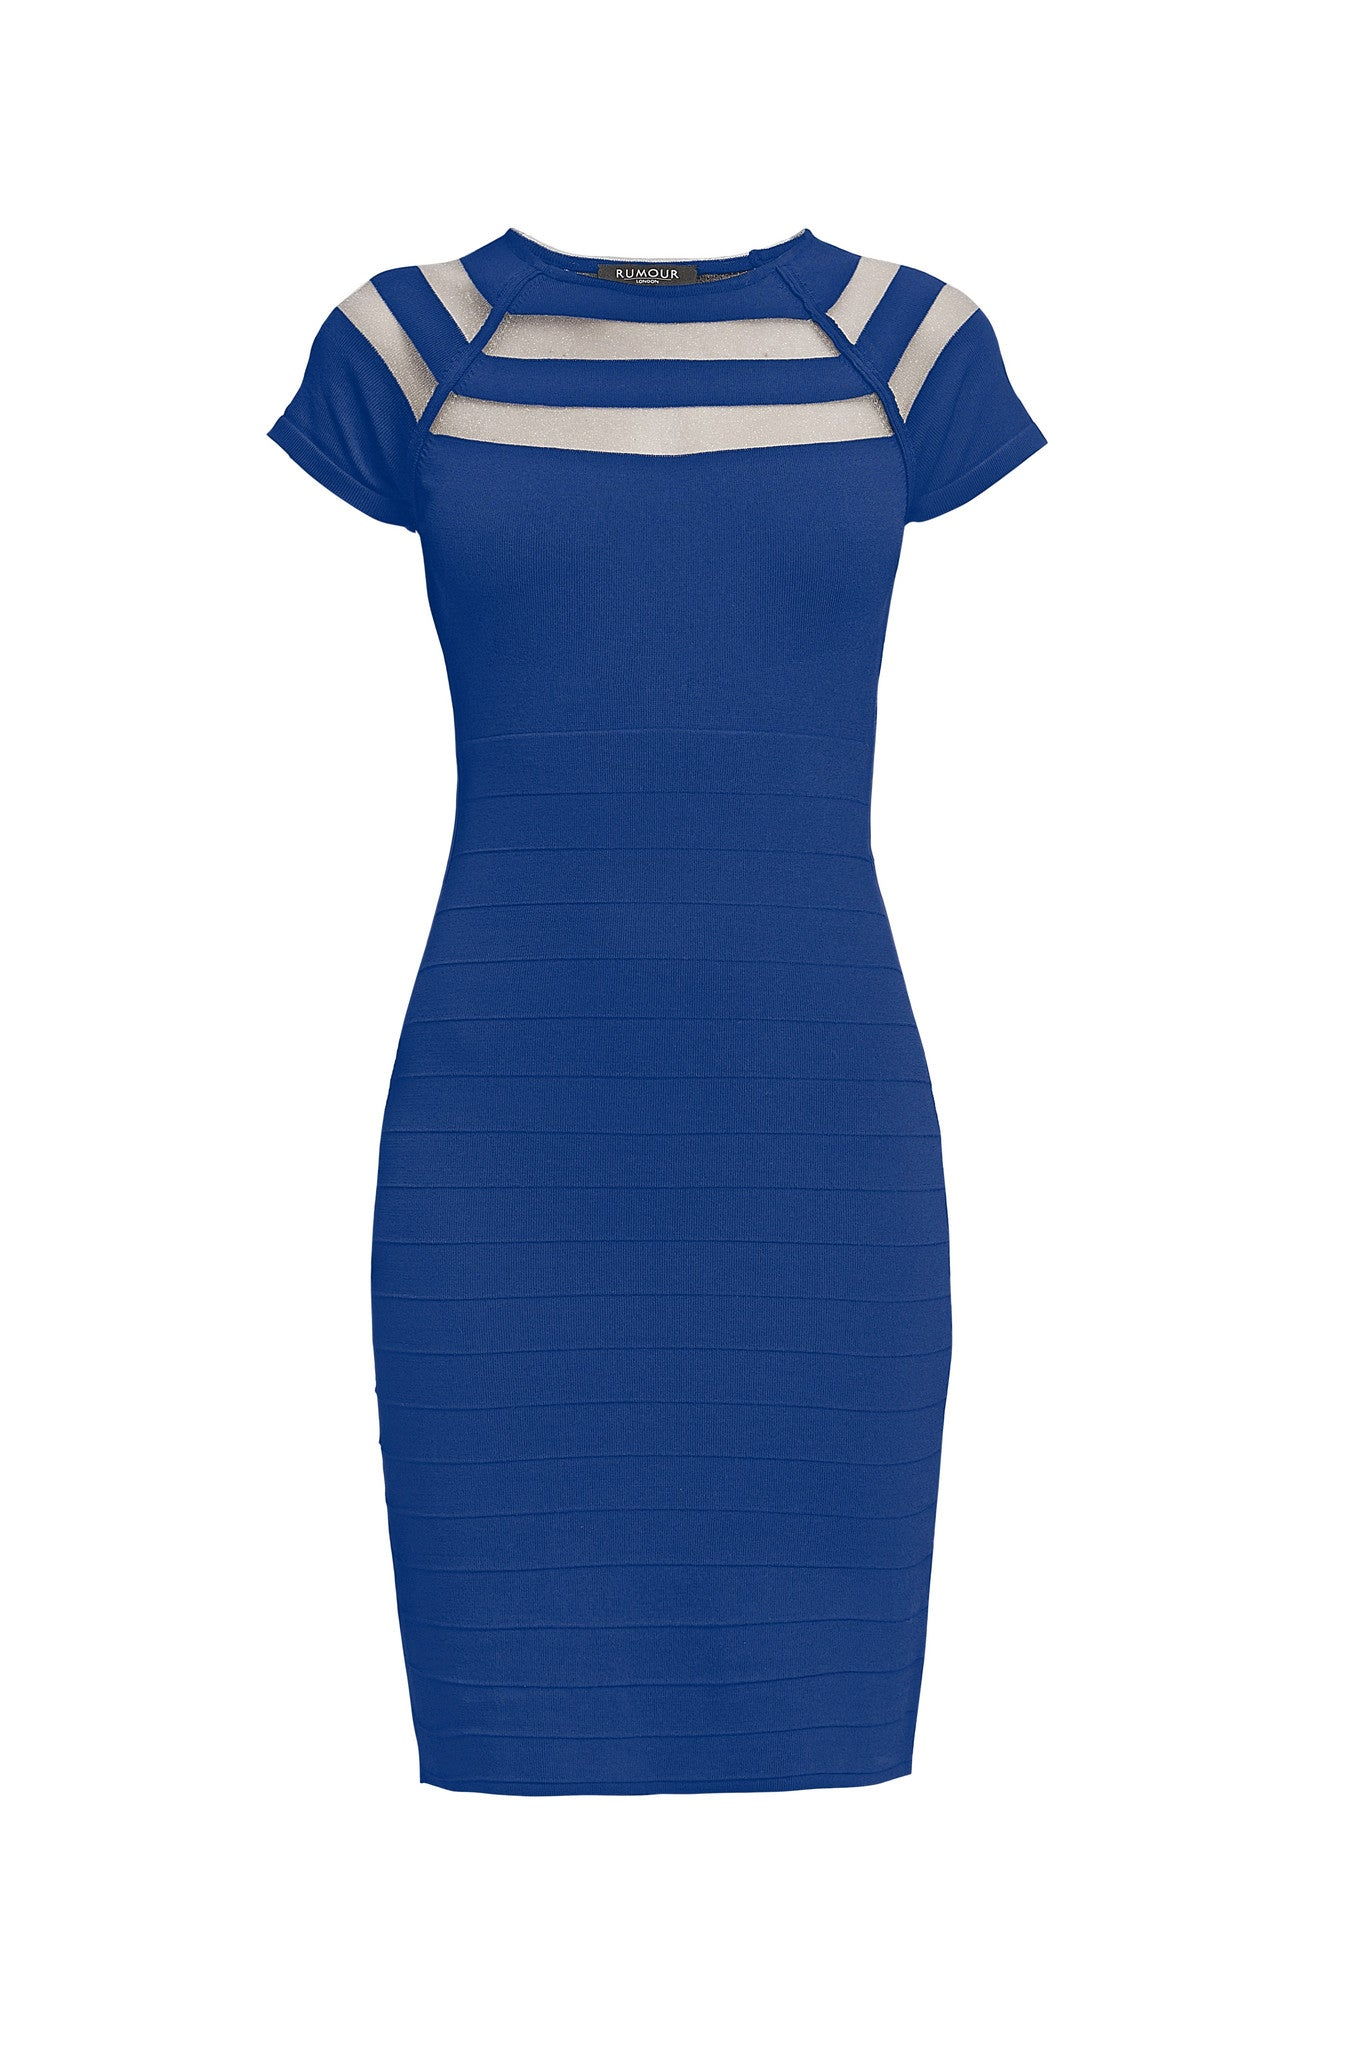 Bodycon Dress with Cut-Out Detail in Royal Blue